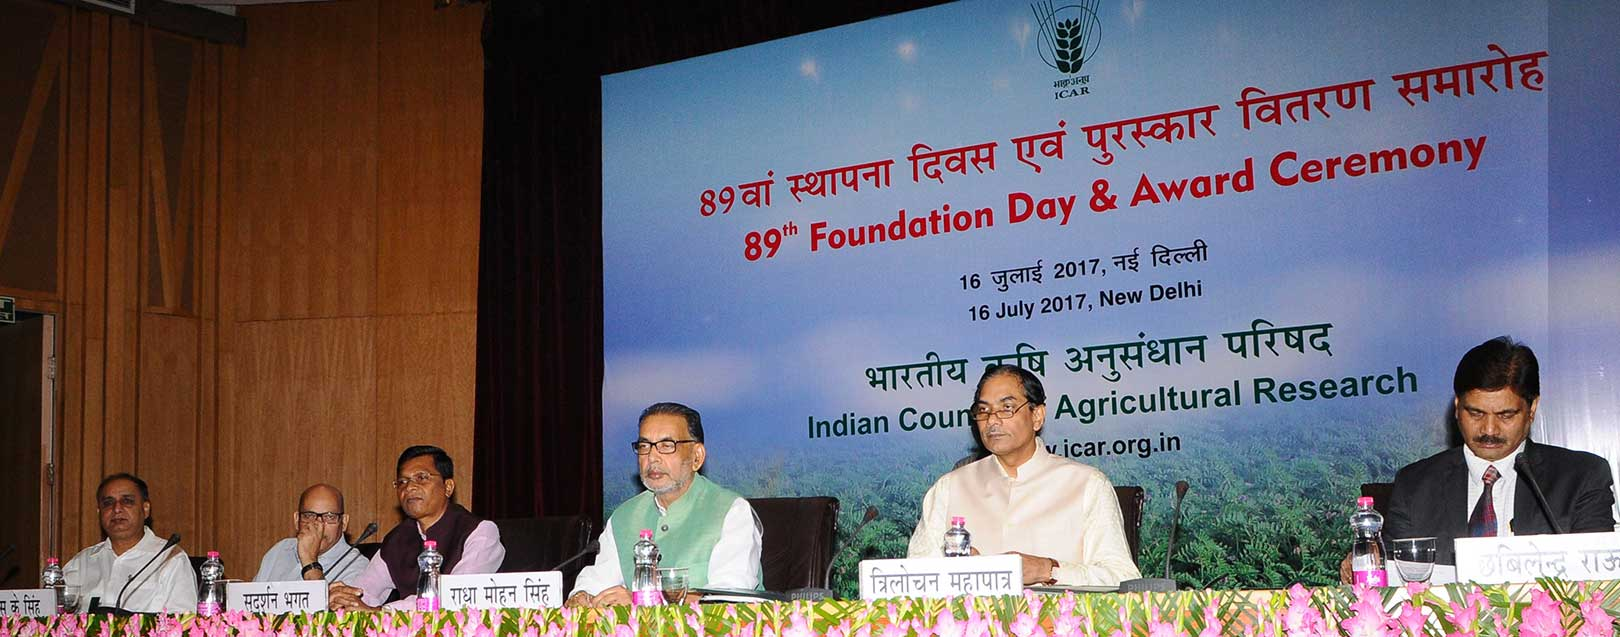 'Country will become self-sufficient in oilseeds and pulses production in the coming years'